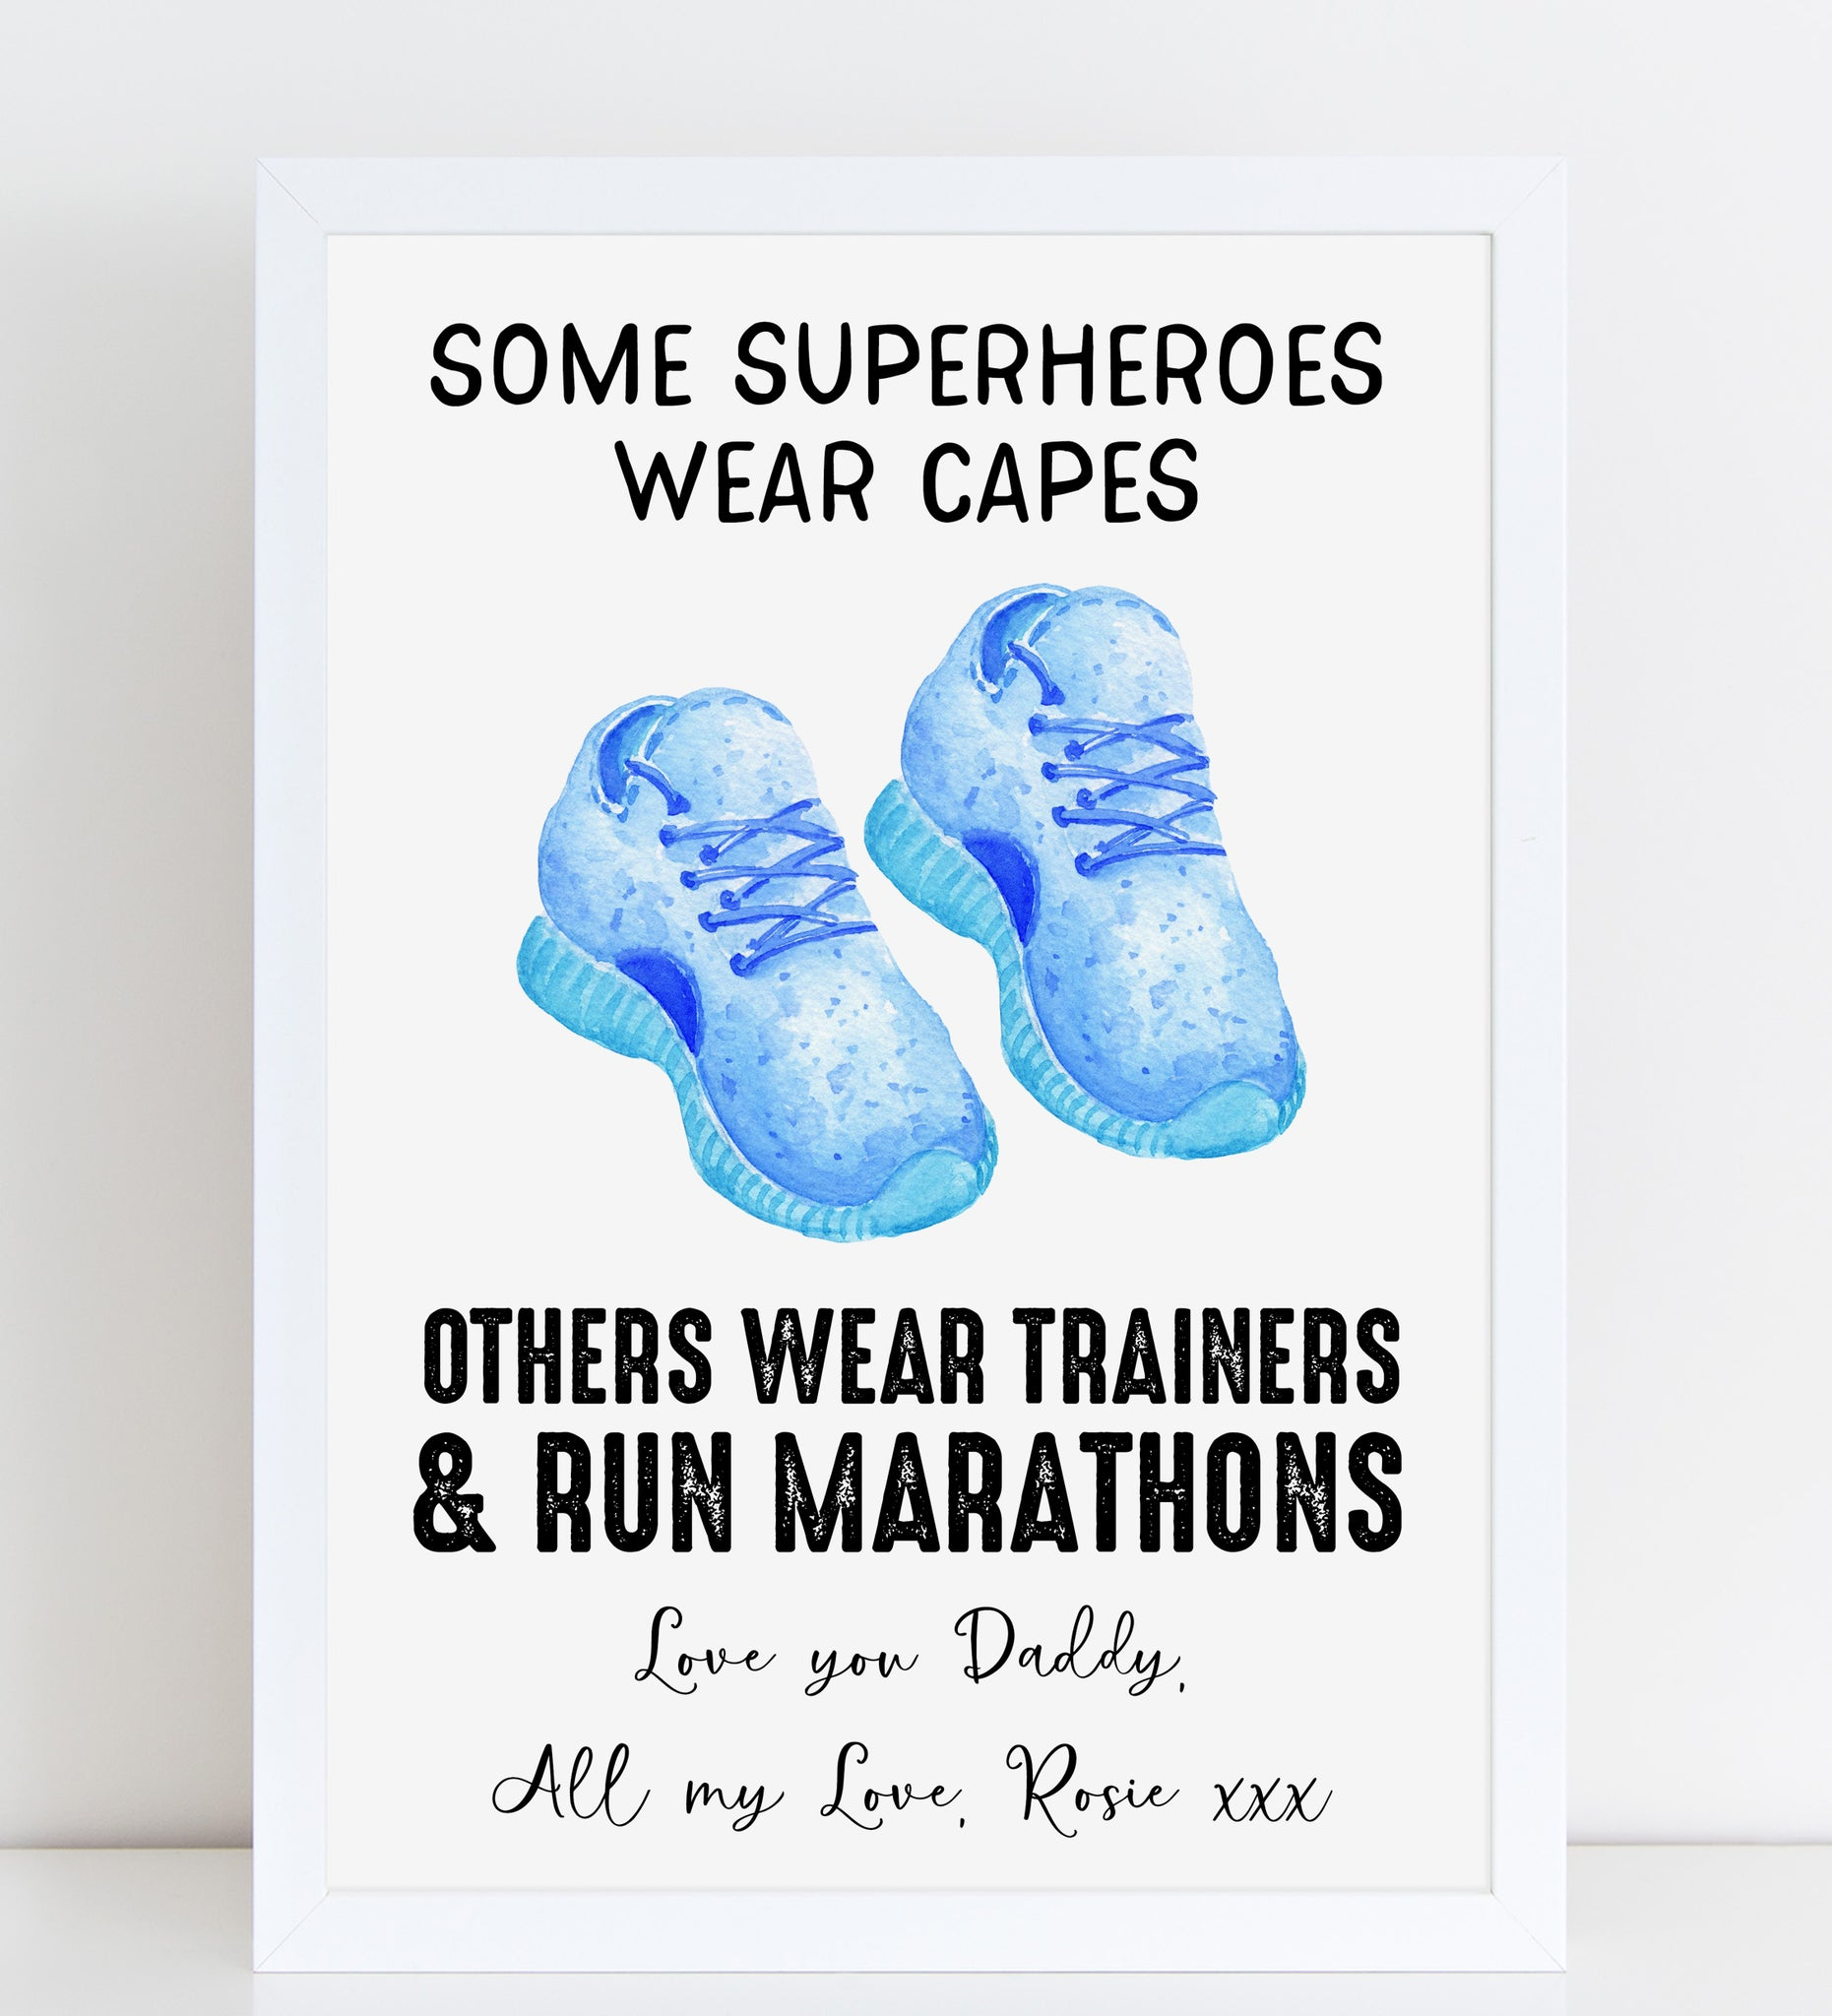 Fathers Day Print Funny Superhero Trainers Personalised Gift for Him, A4 or A3, Framed Available